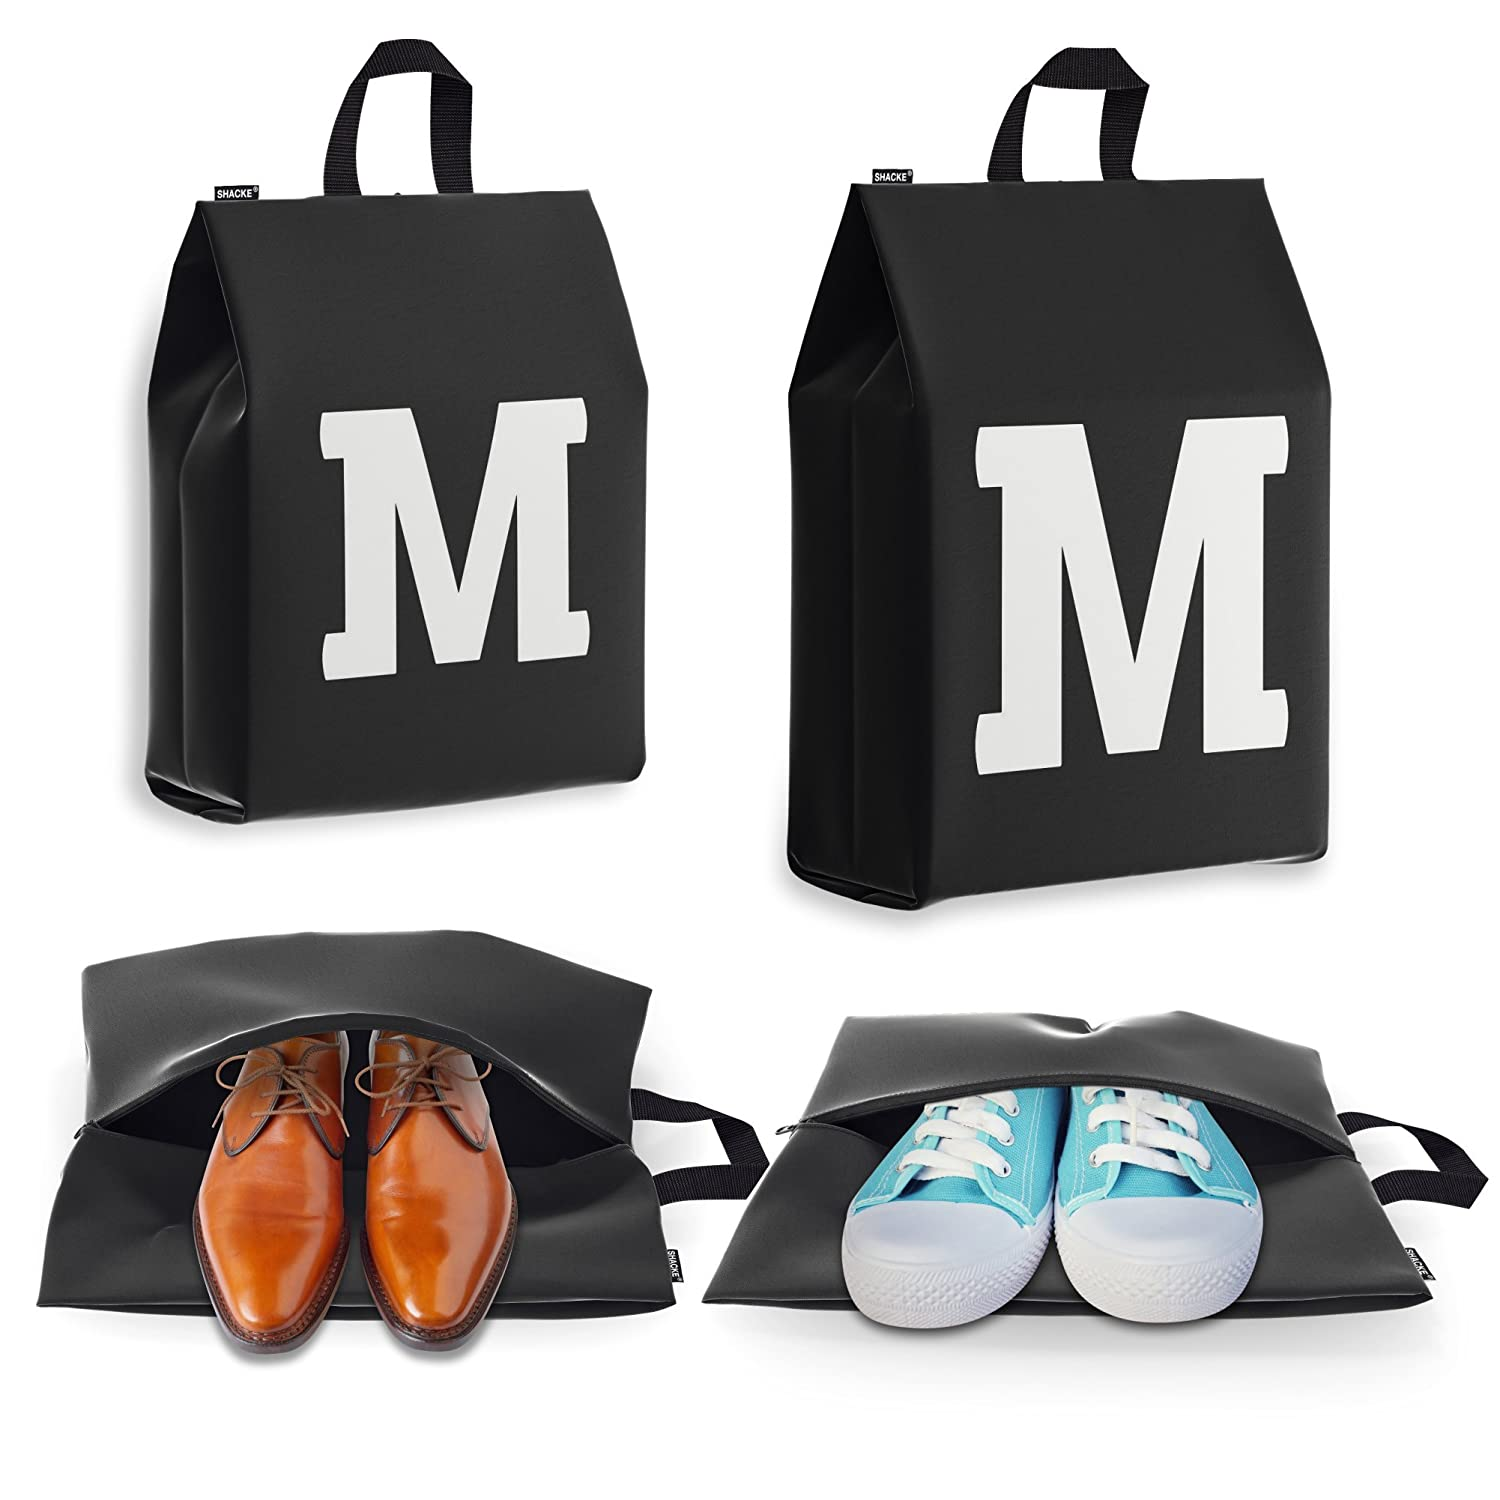 Personalized Initial Travel Shoe Bag (4 Pack) for Men, Women and Kids SB00A